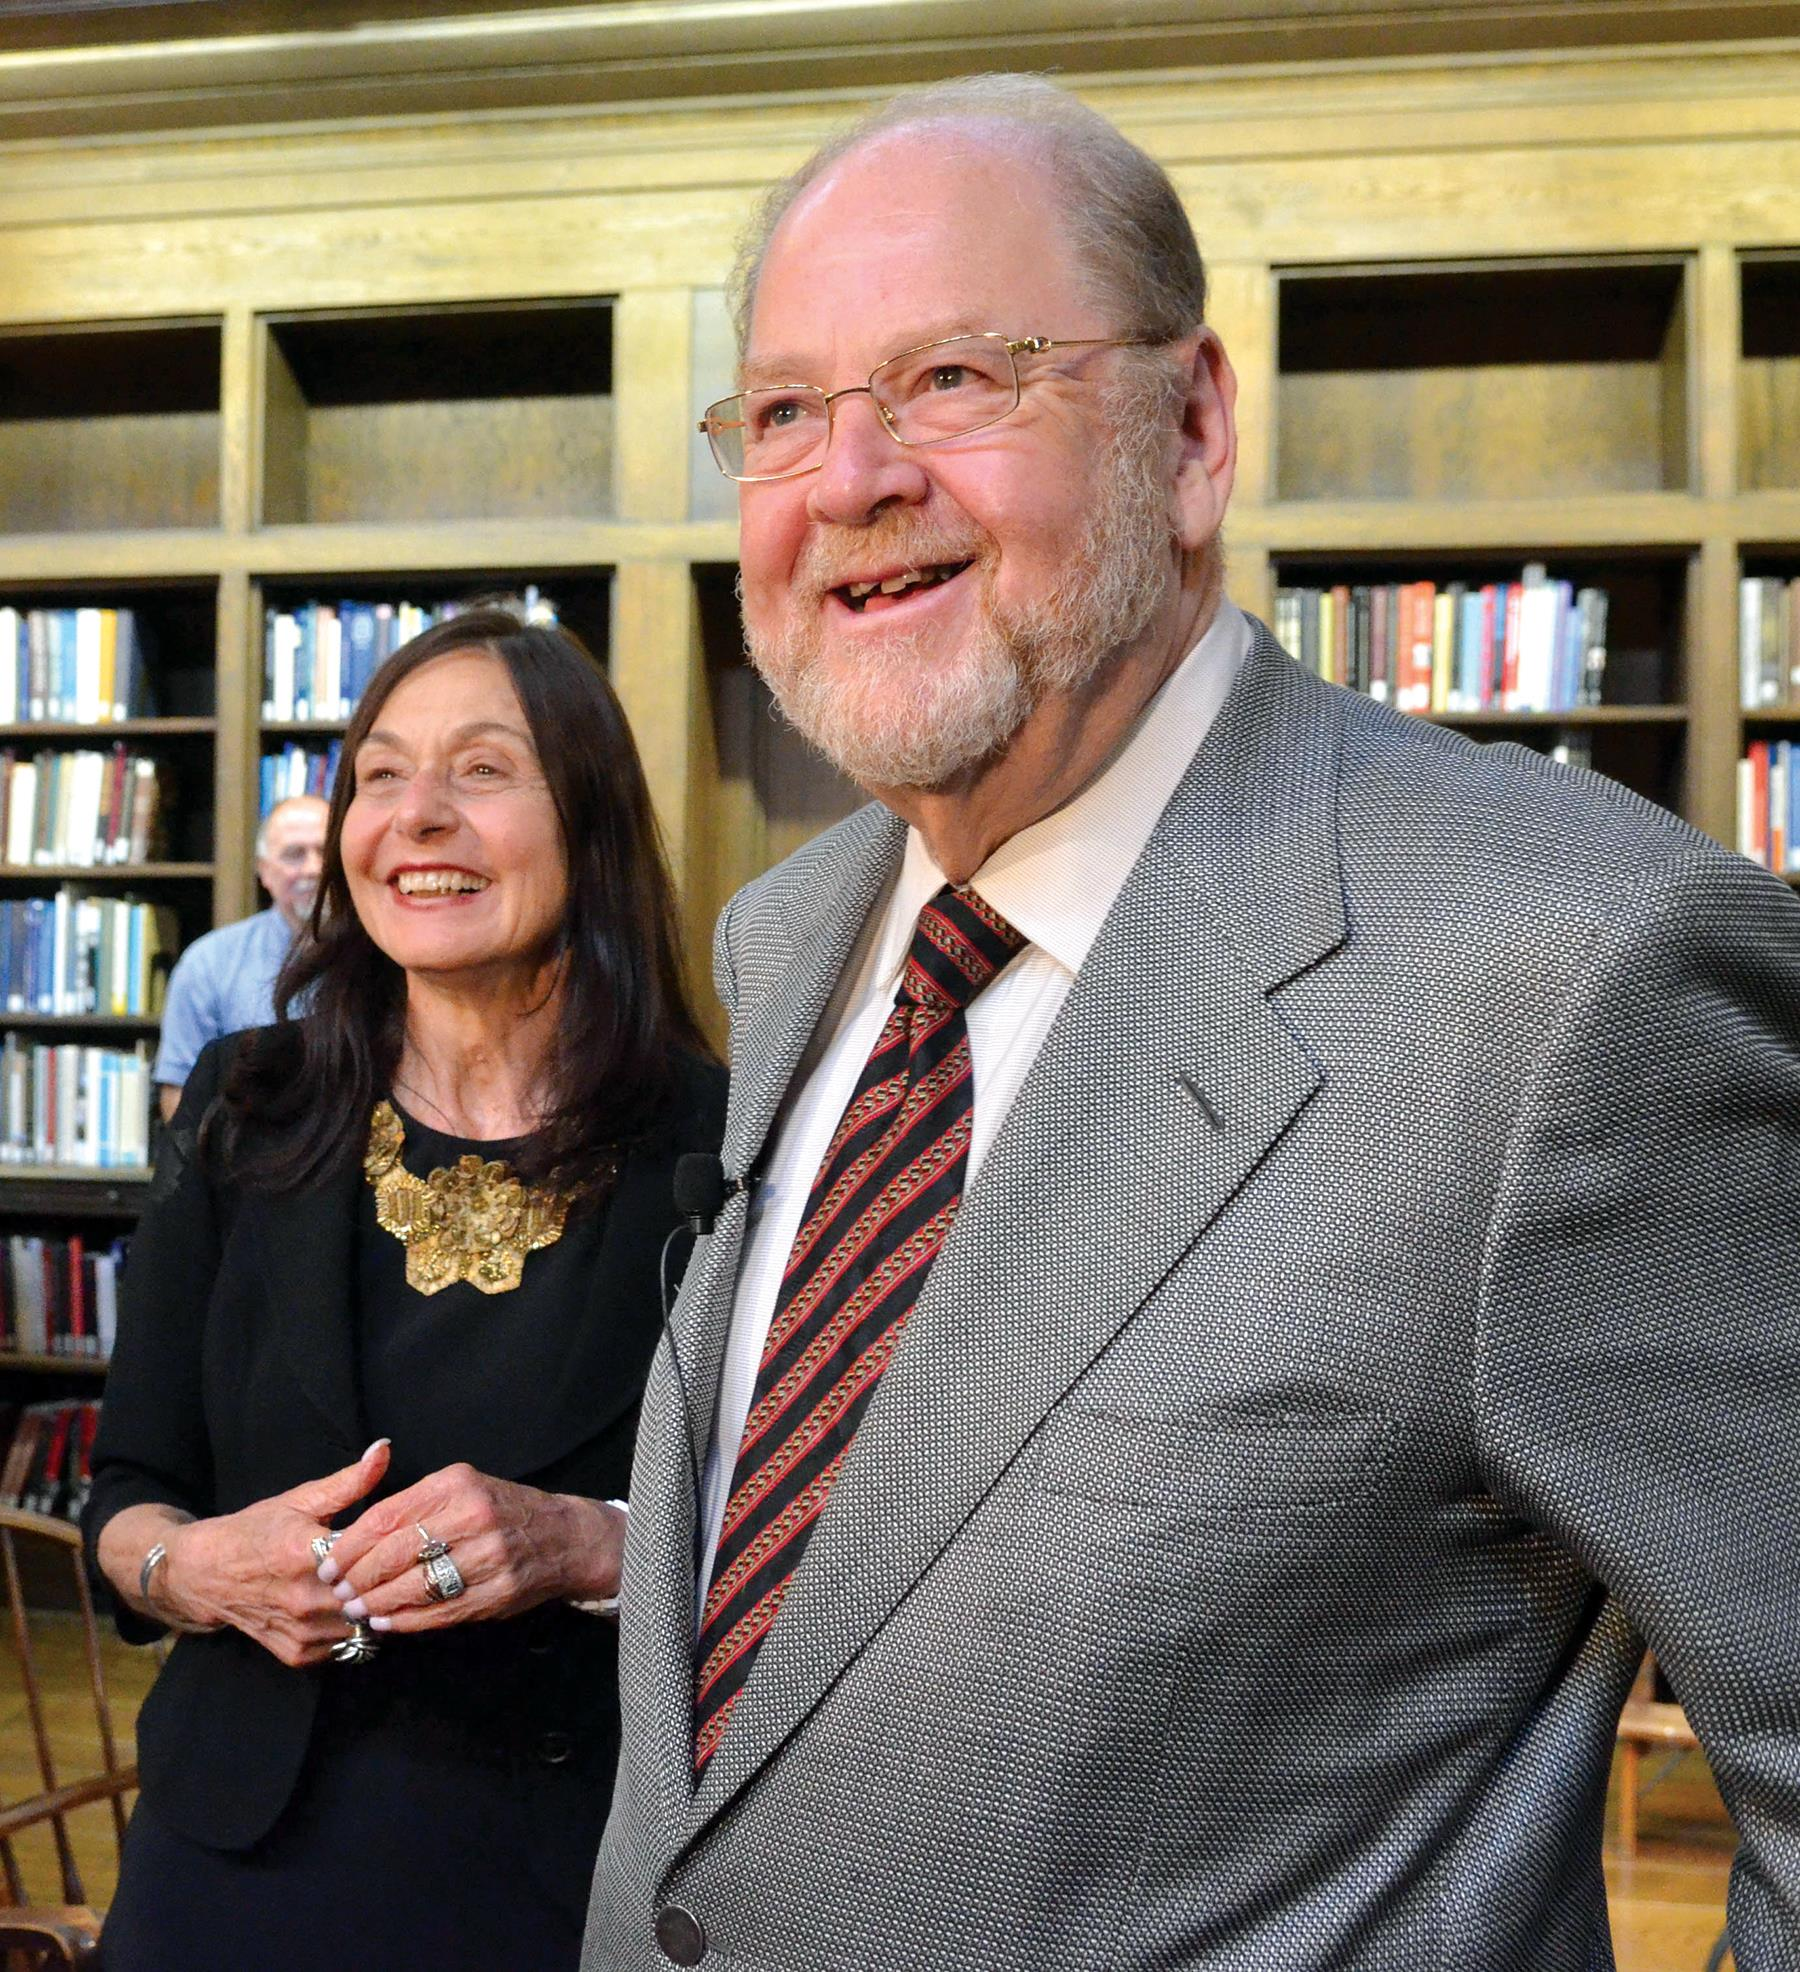 James Rothman, shown with his wife, Joy Hirsch